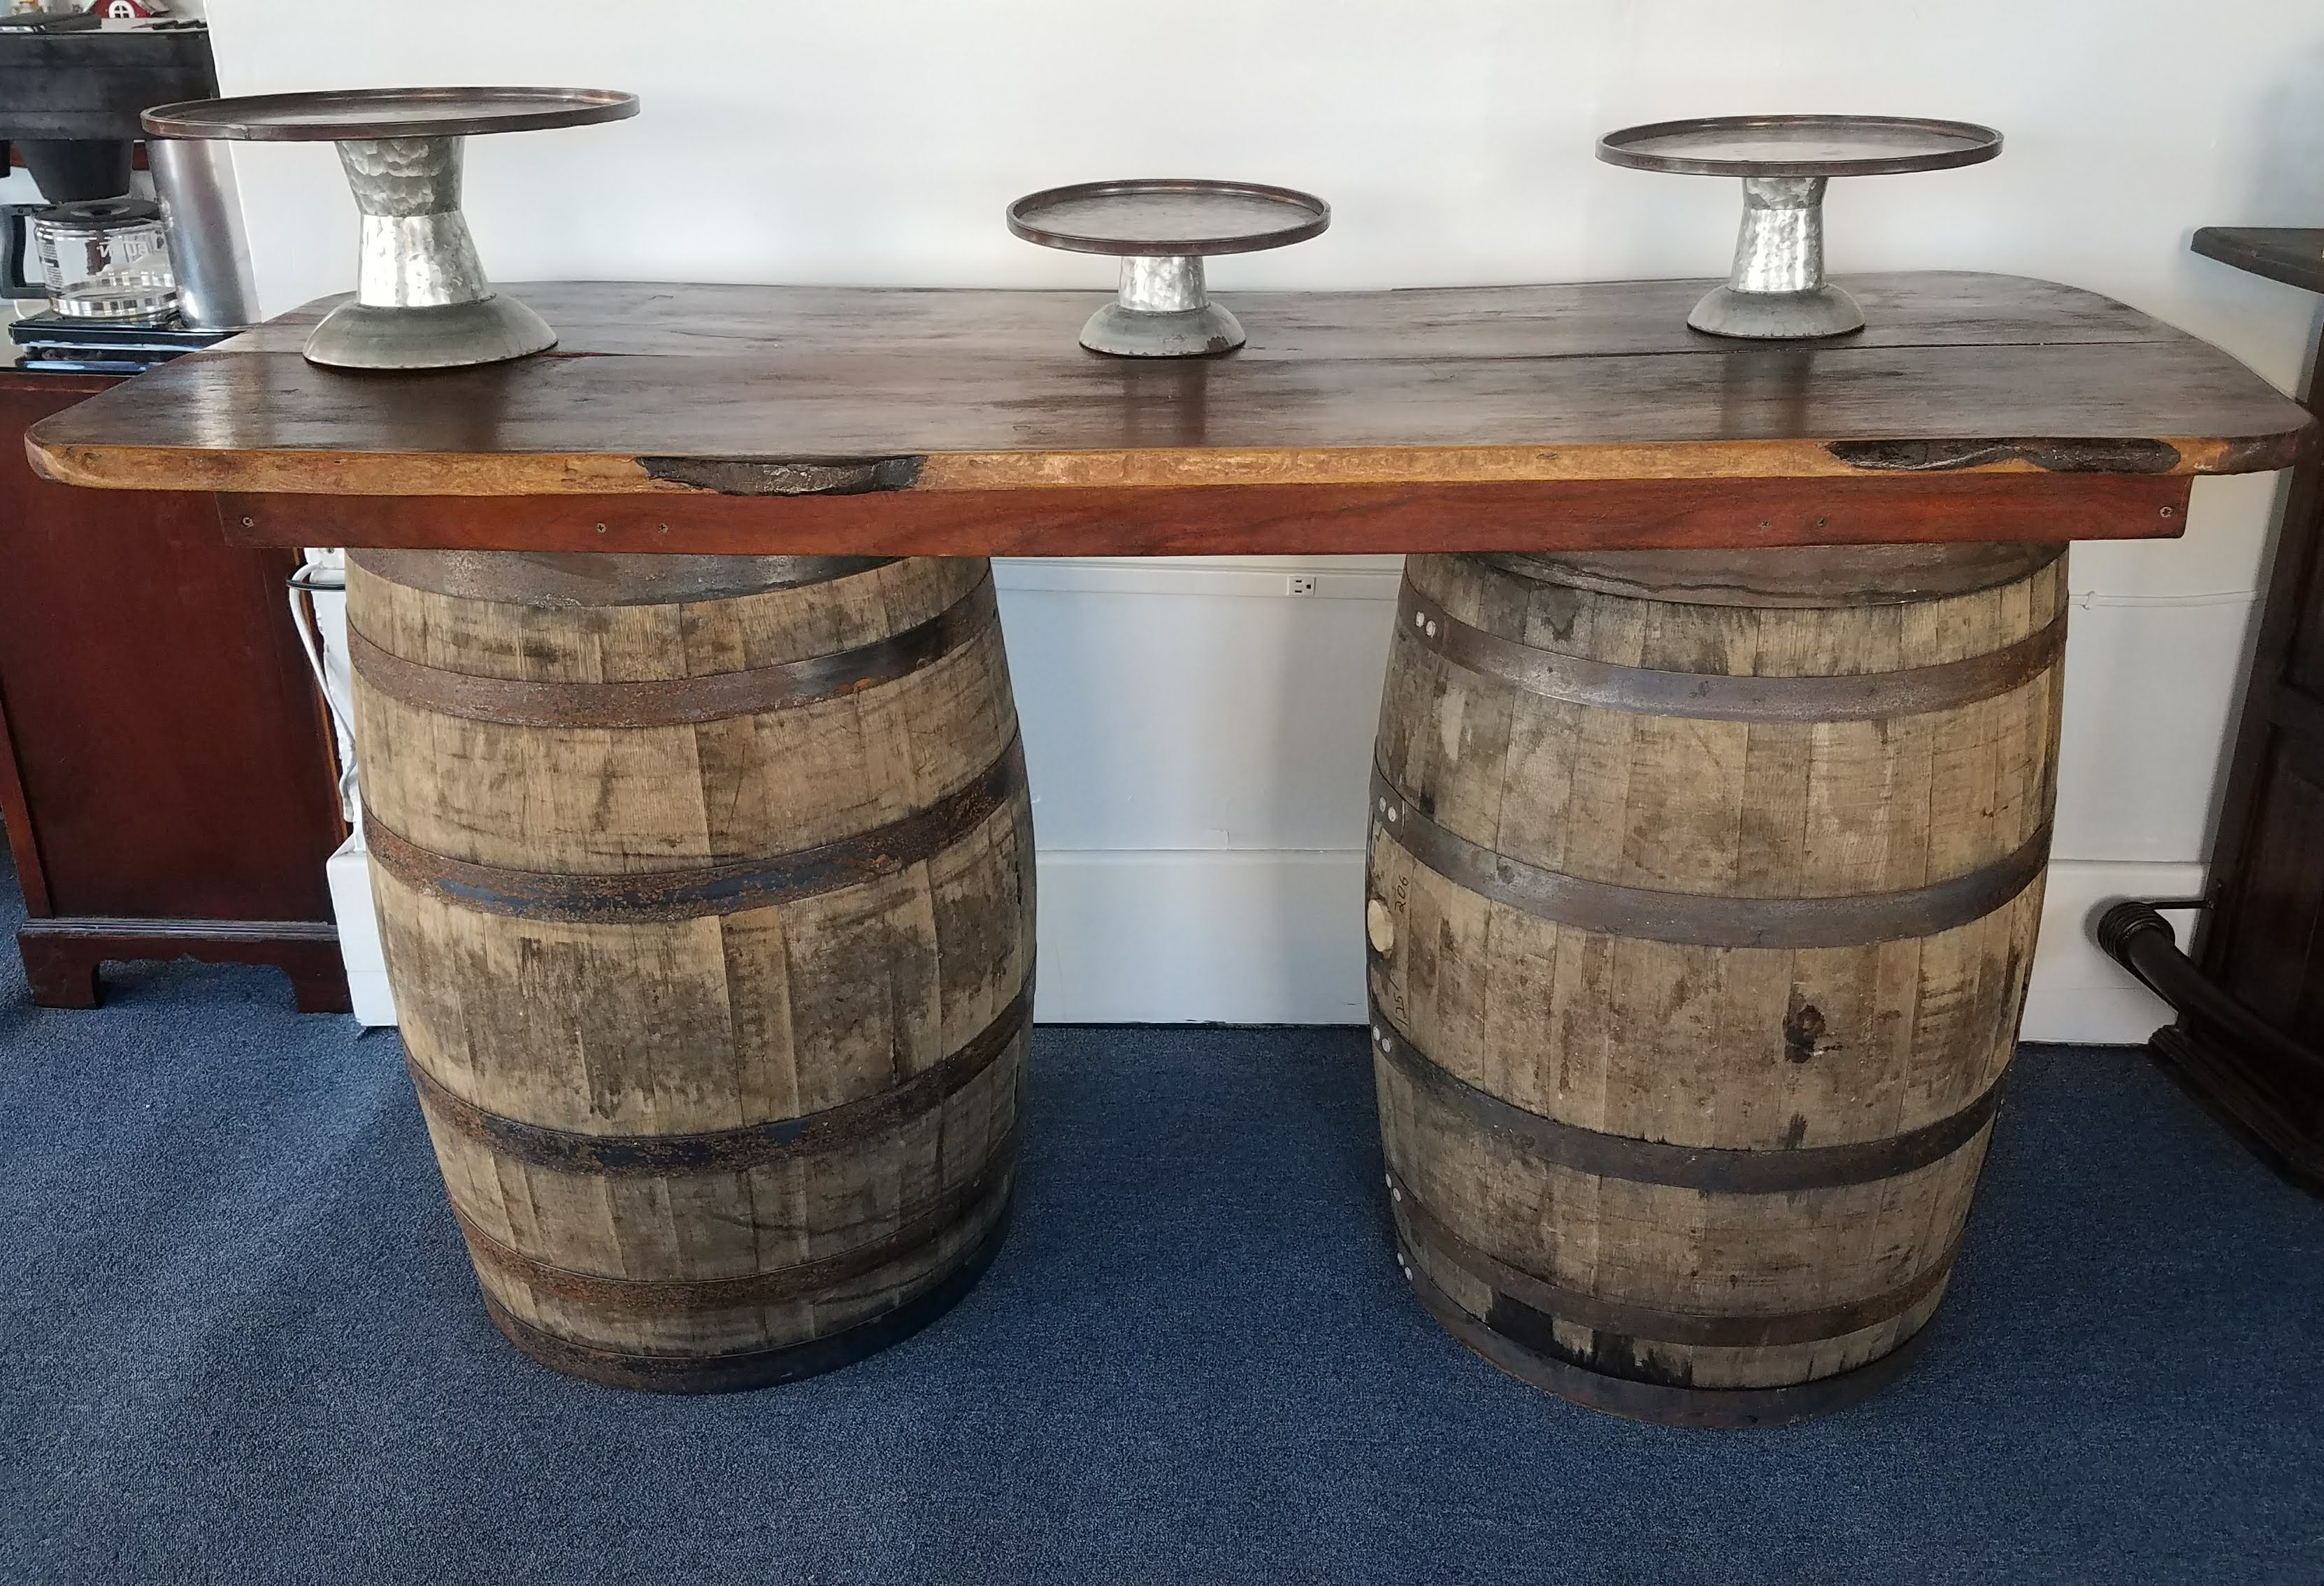 Whiskey Barrel Table $80 / Day